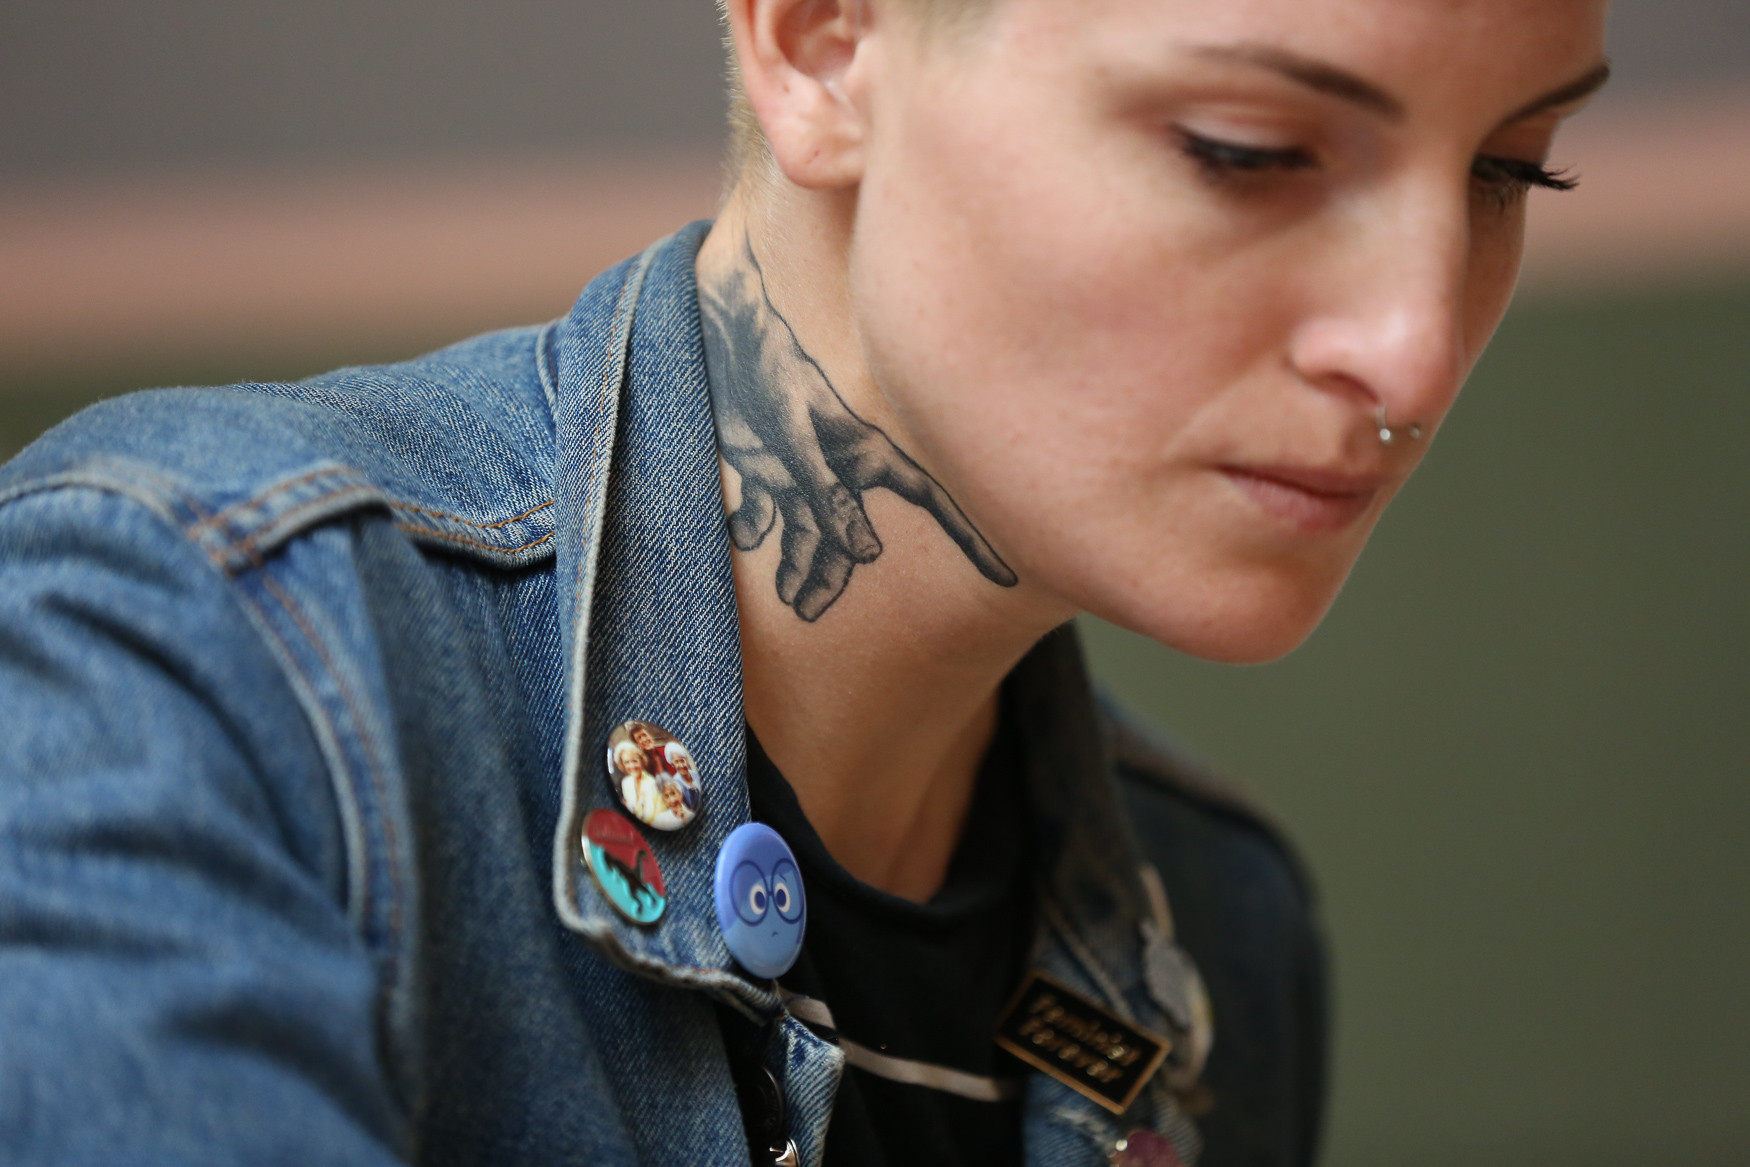 The buttons. The tattoos. The jacket. This details of this outfit are cooler than most of us could ever hope to be, while still being effortless. (Amanda Andrade-Rhoades/DC Refined)